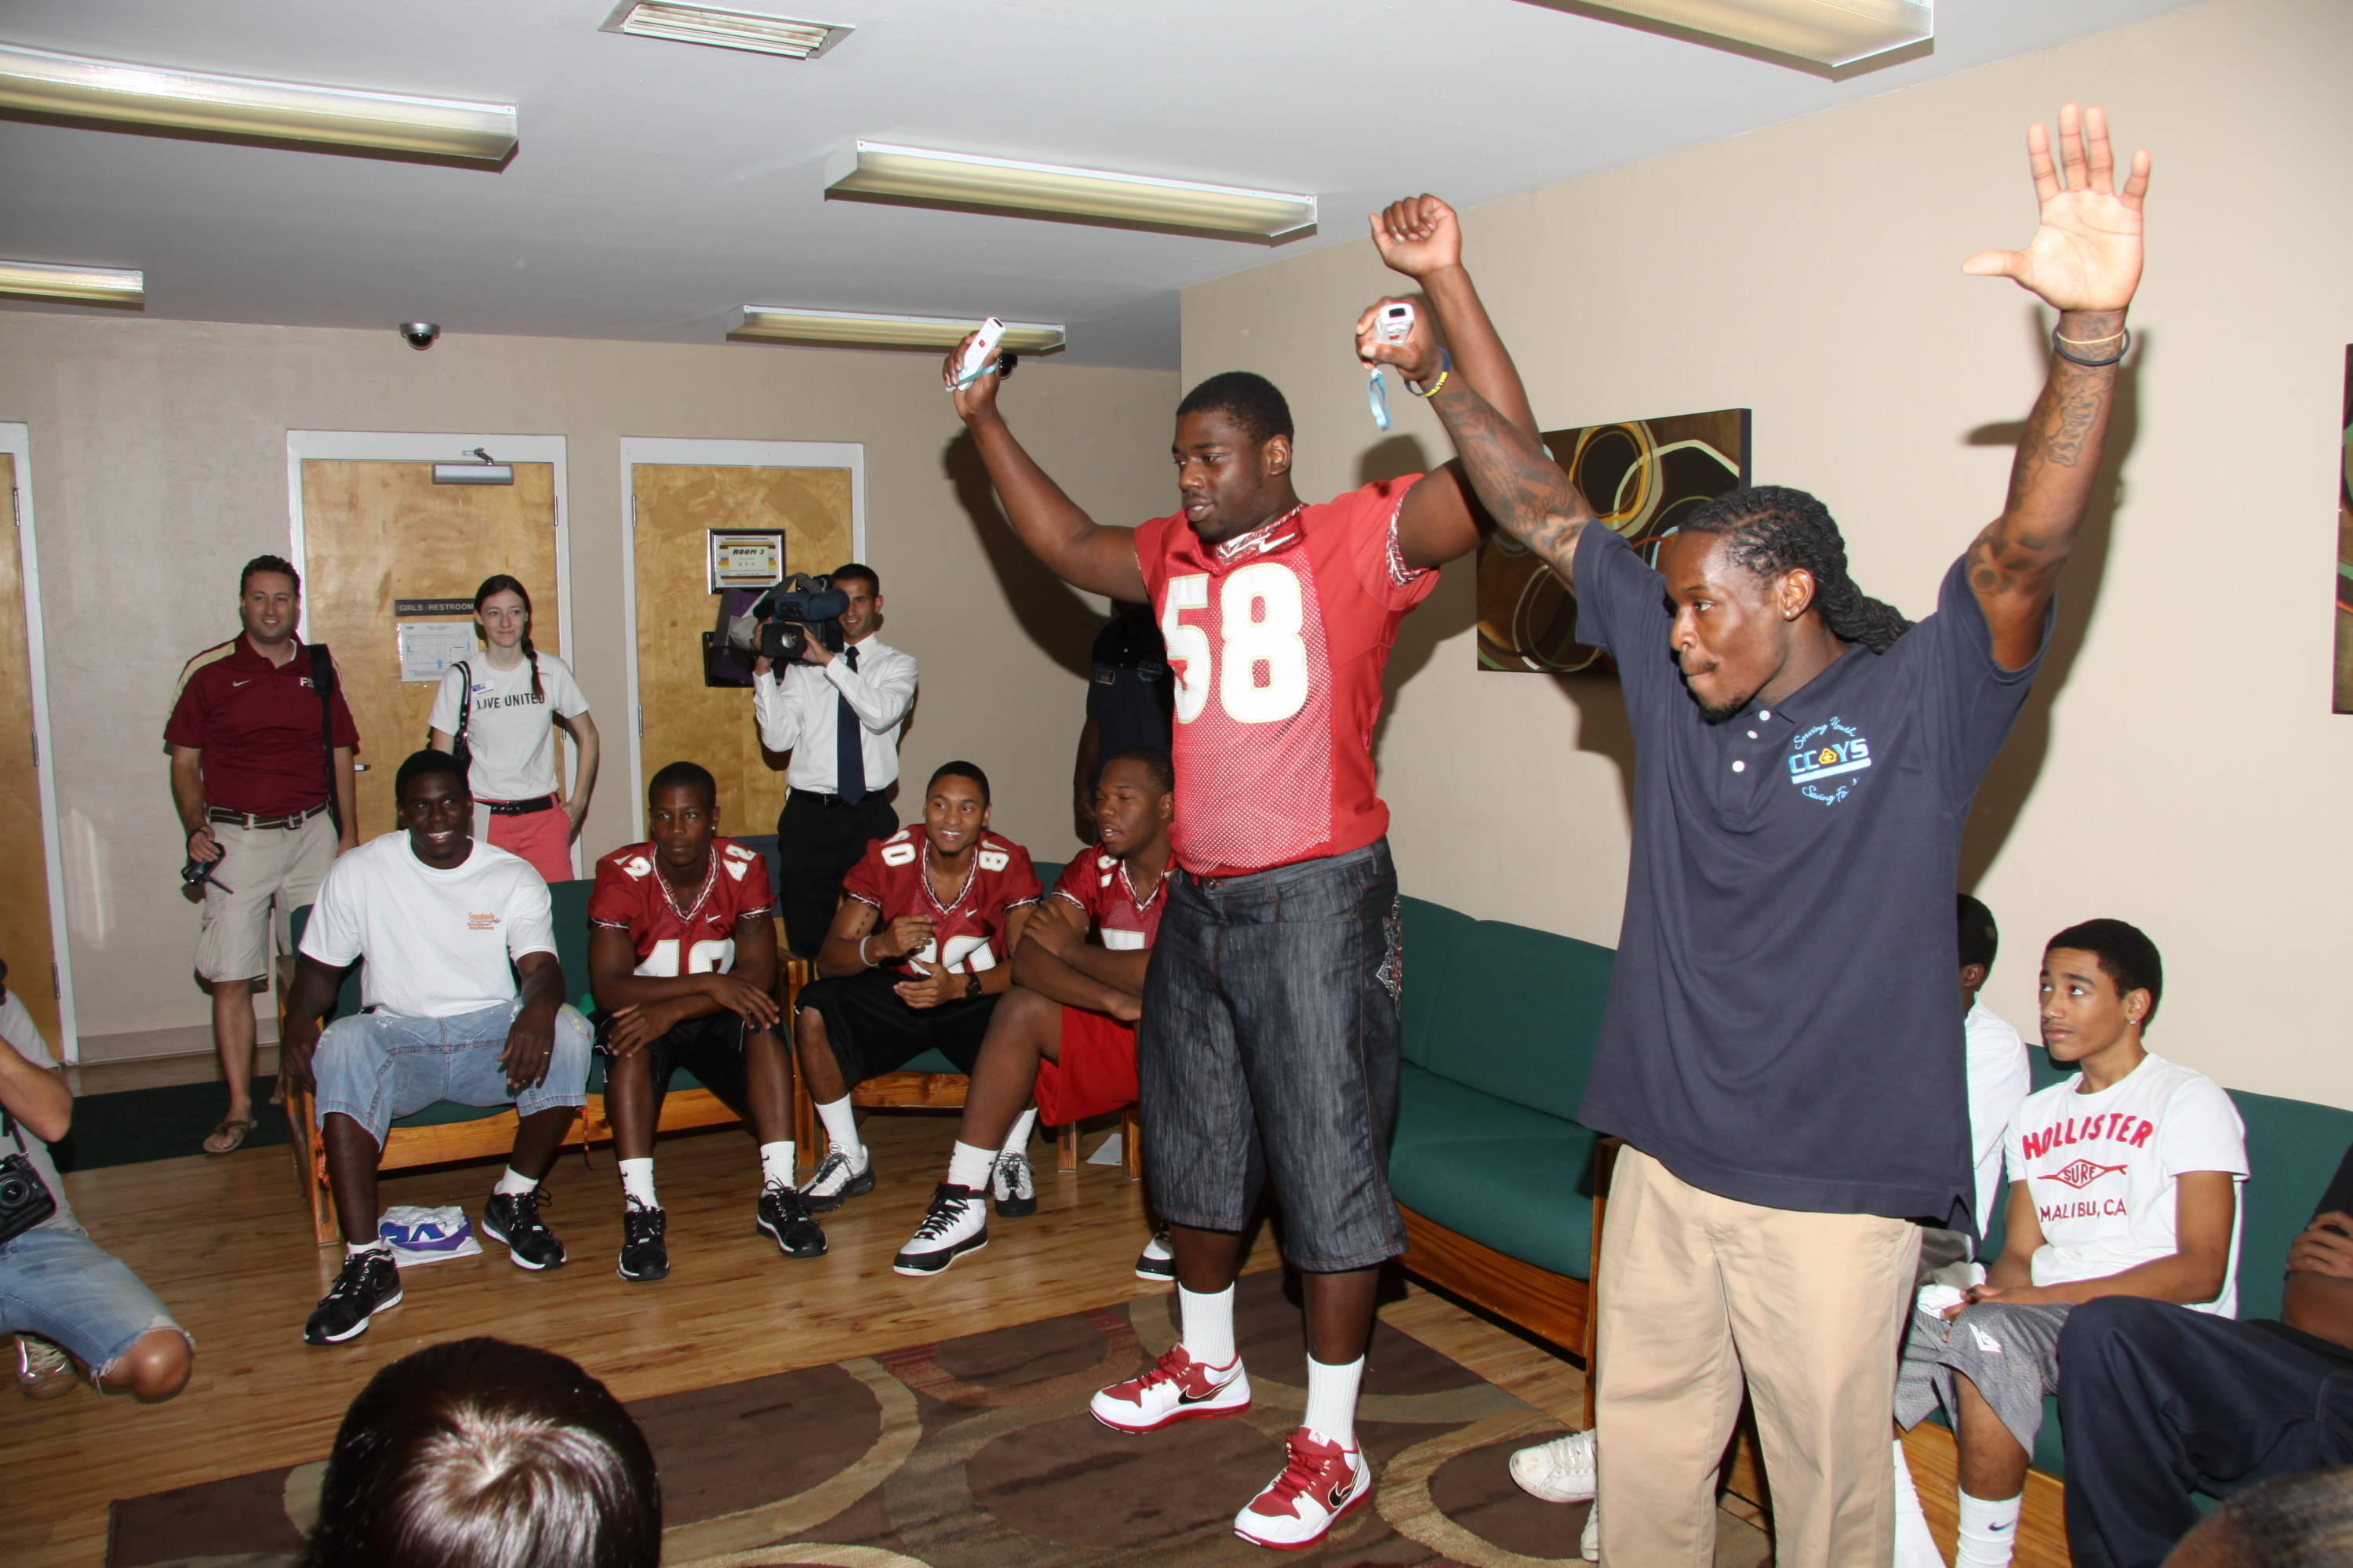 Dan Hicks plays Wii at Capital City Youth Services as part of FSU's Day of Doing.